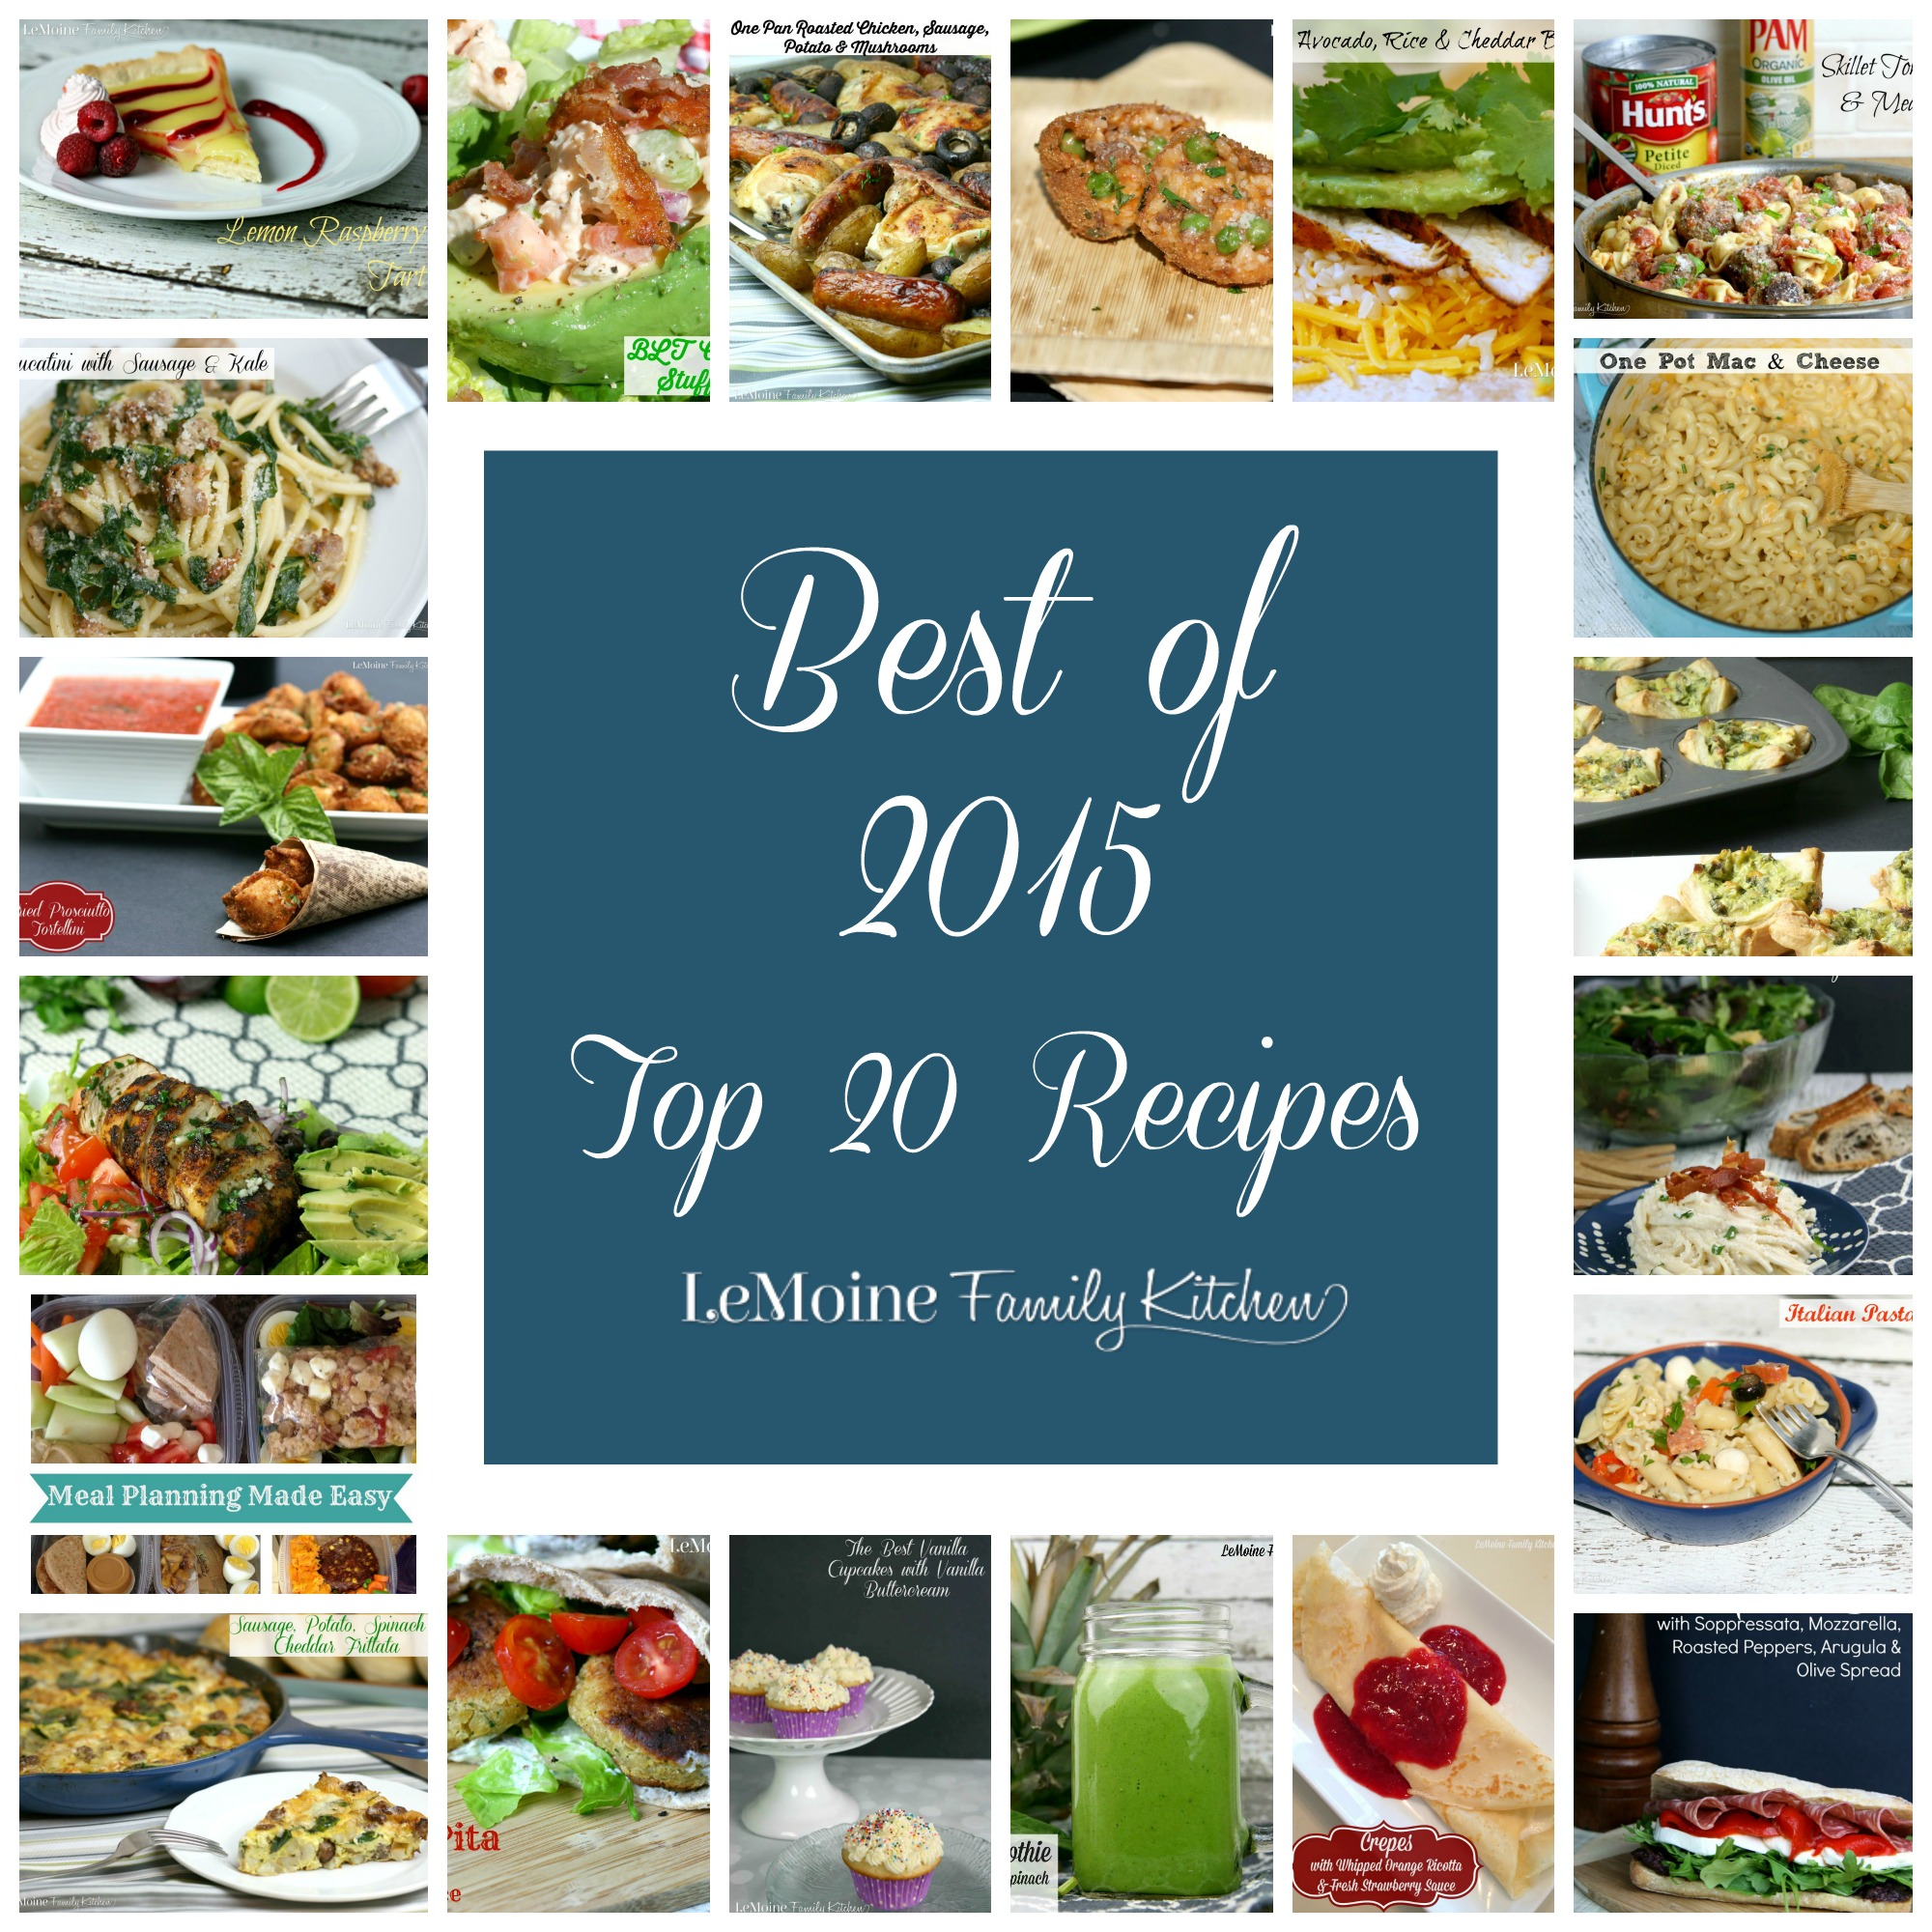 Best of 2015 {Top 20 Recipes} | LeMoine Family Kitchen . This years best new recipes! Everything from appetizers, lunches, dinner, desserts and more!